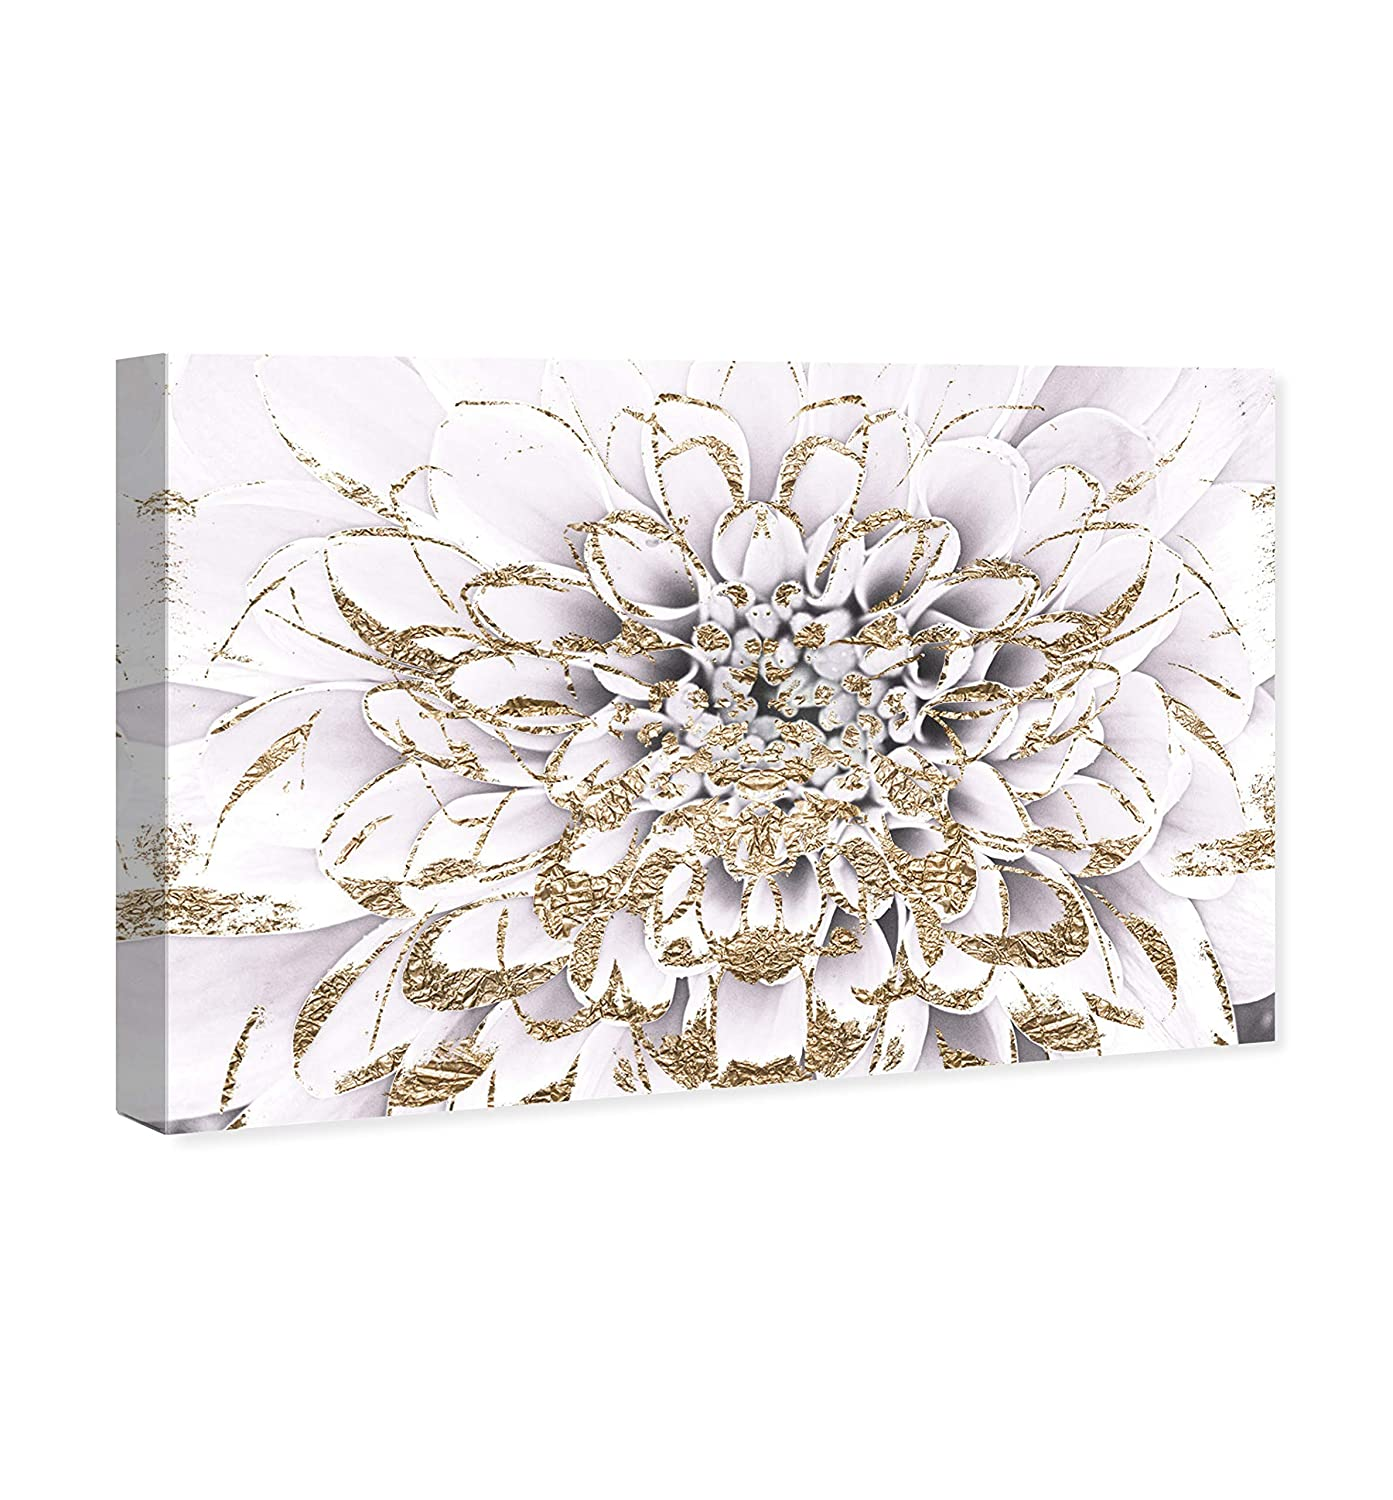 The Oliver Gal Artist Co. Floral and Botanical Wall Art Canvas Prints Floralia Blanc Home D cor, 60 x 40 , Gold, White